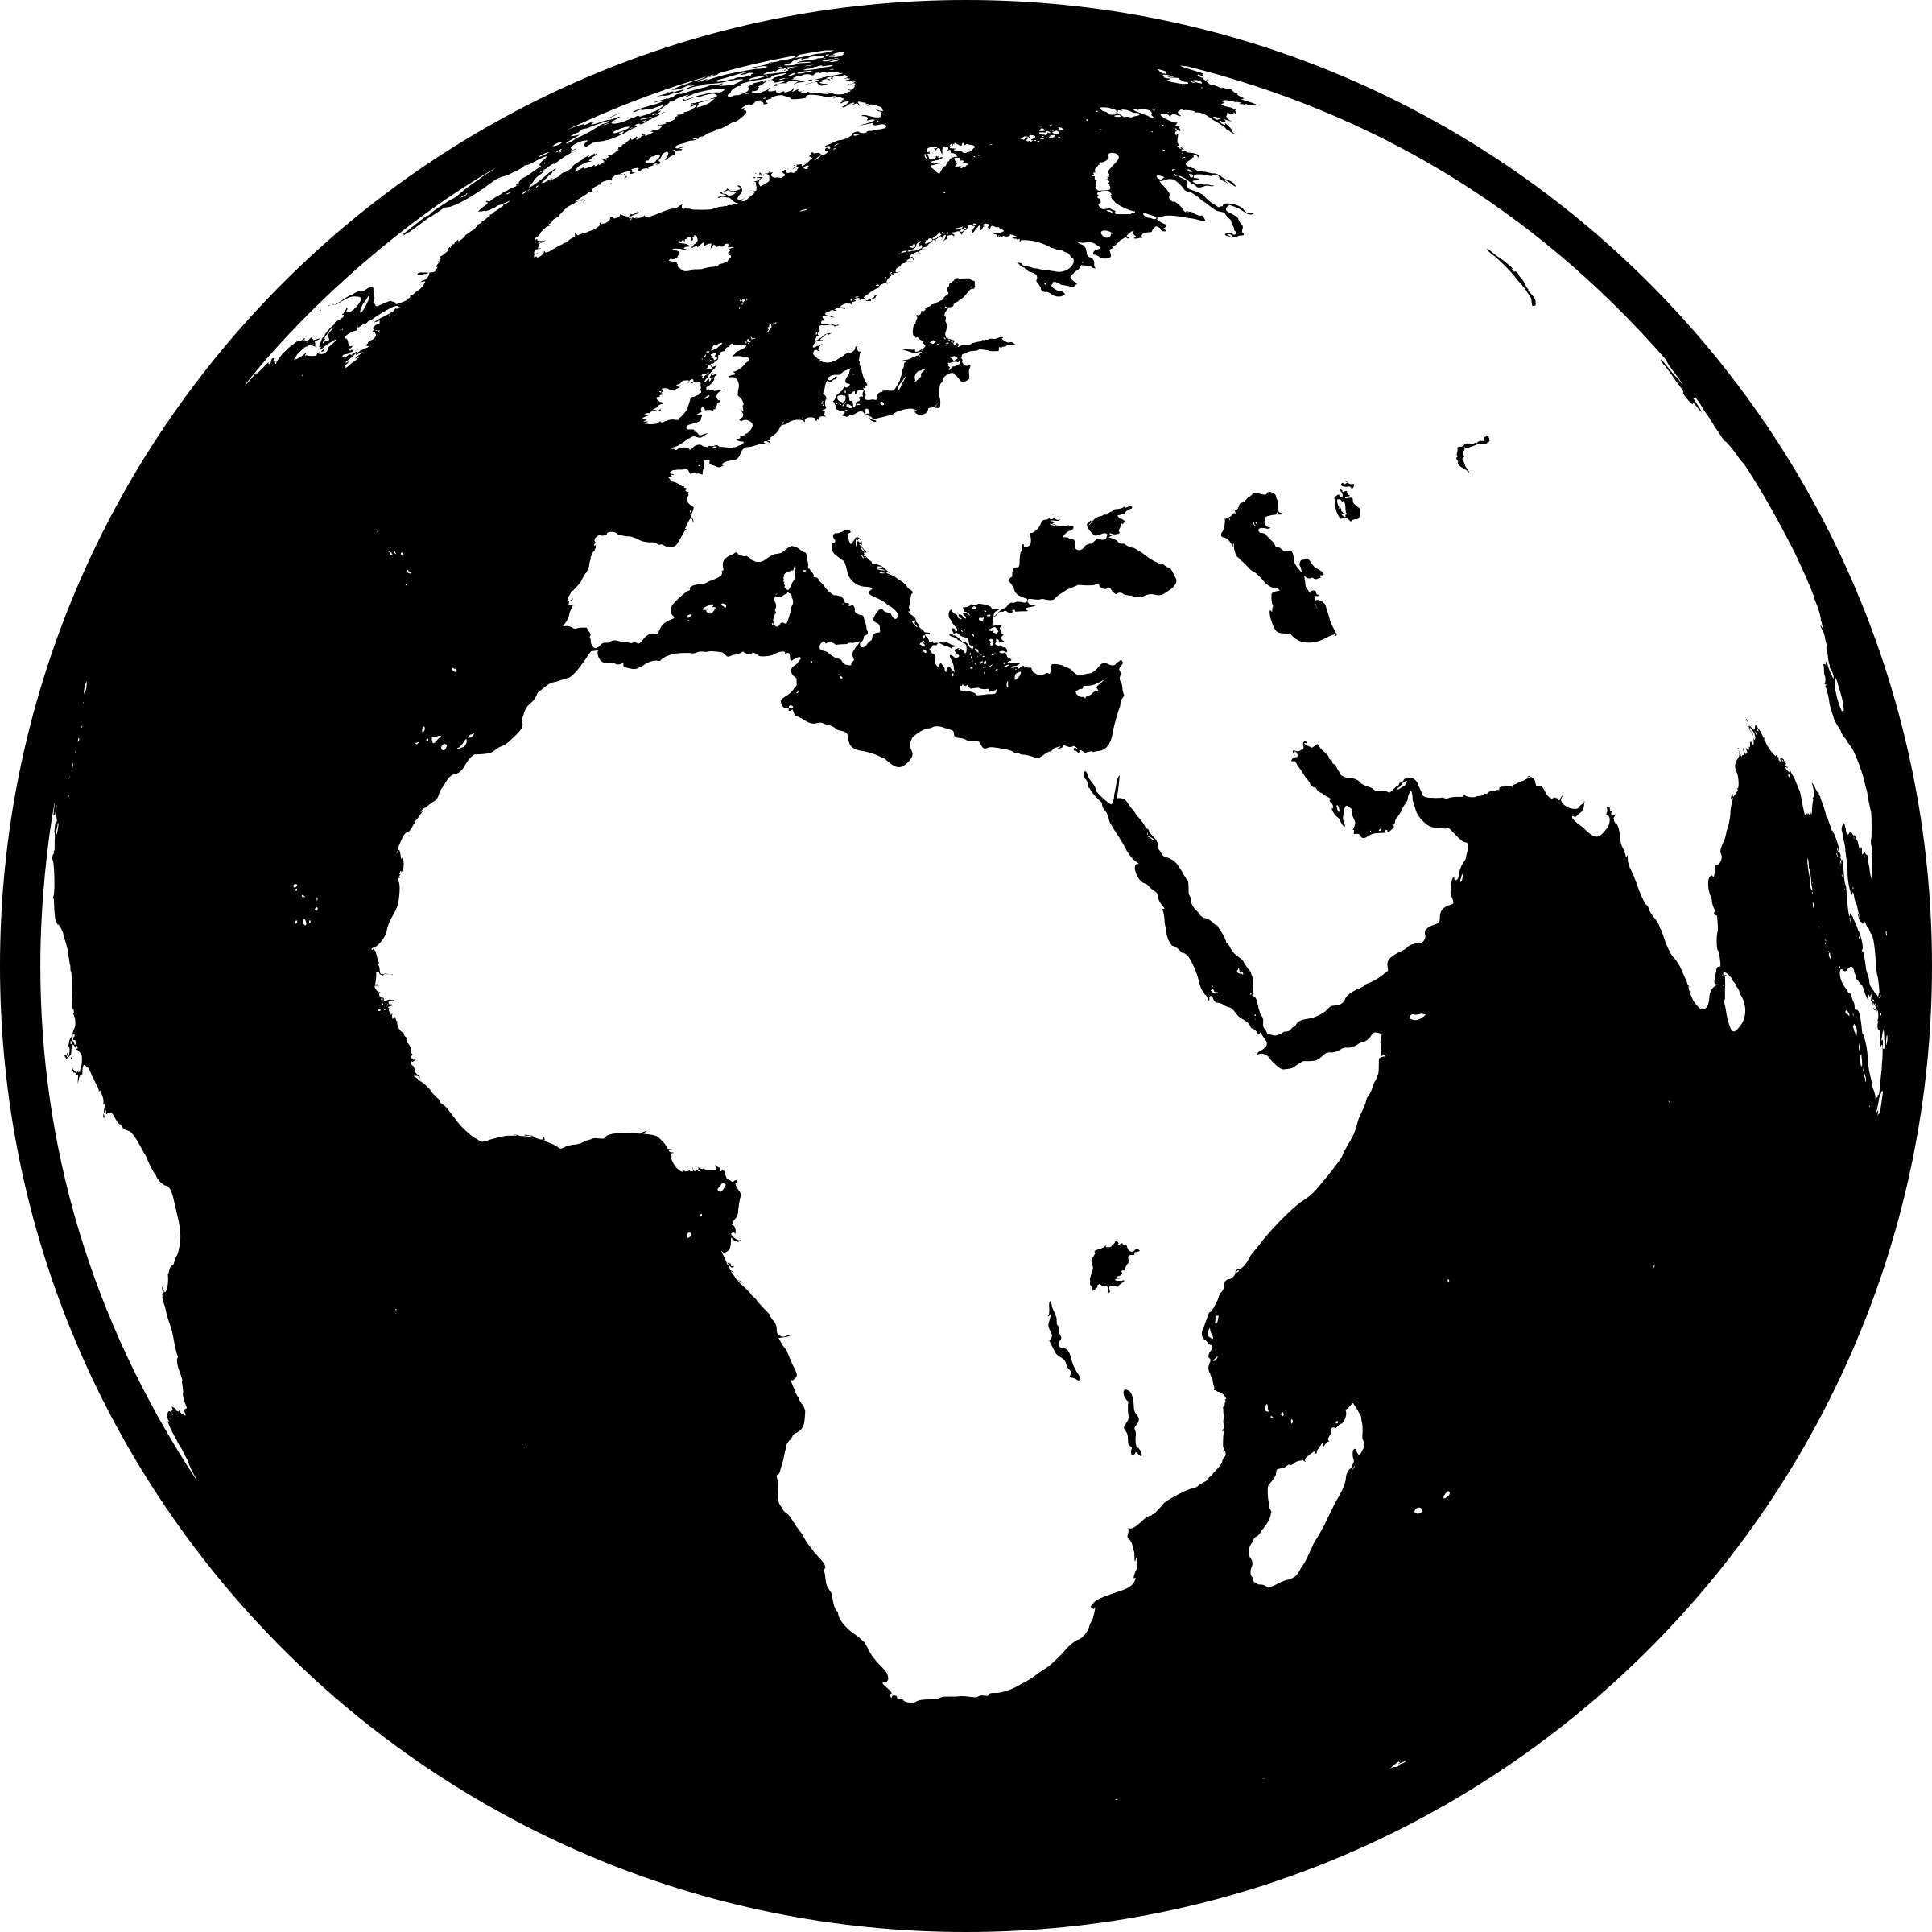 Earth Clipart Black And White Africa.